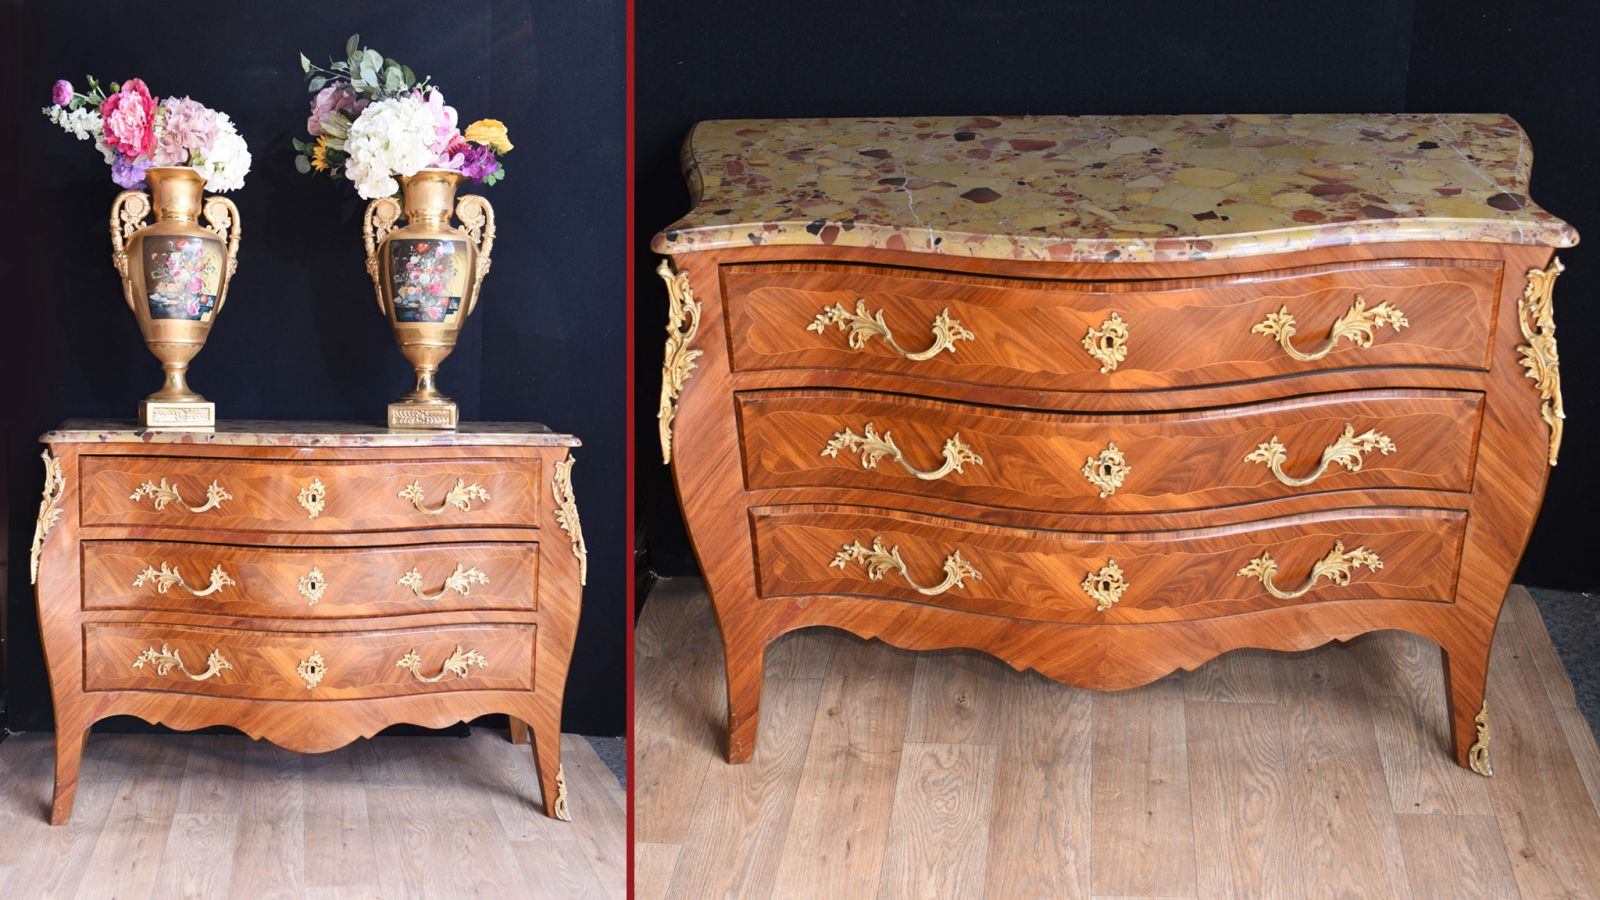 French Chest of Drawers - Antique Kingwood Bombe Commode